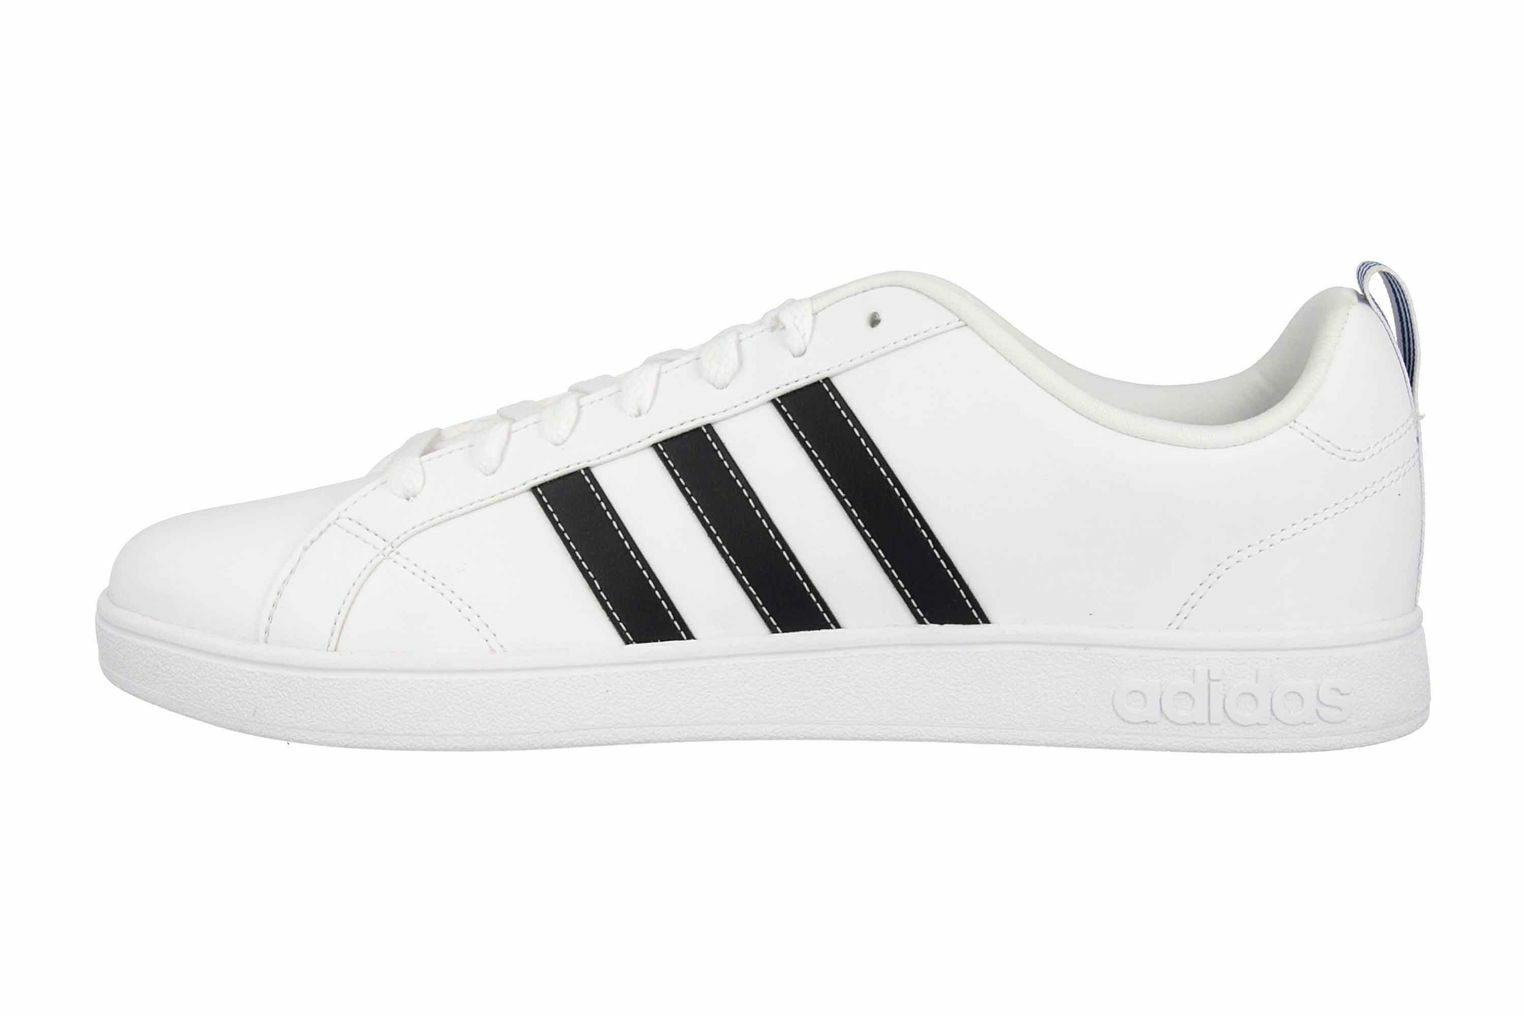 Adidas vs Advantage Sneakers Size Extra Large White f99256 Great shoes man